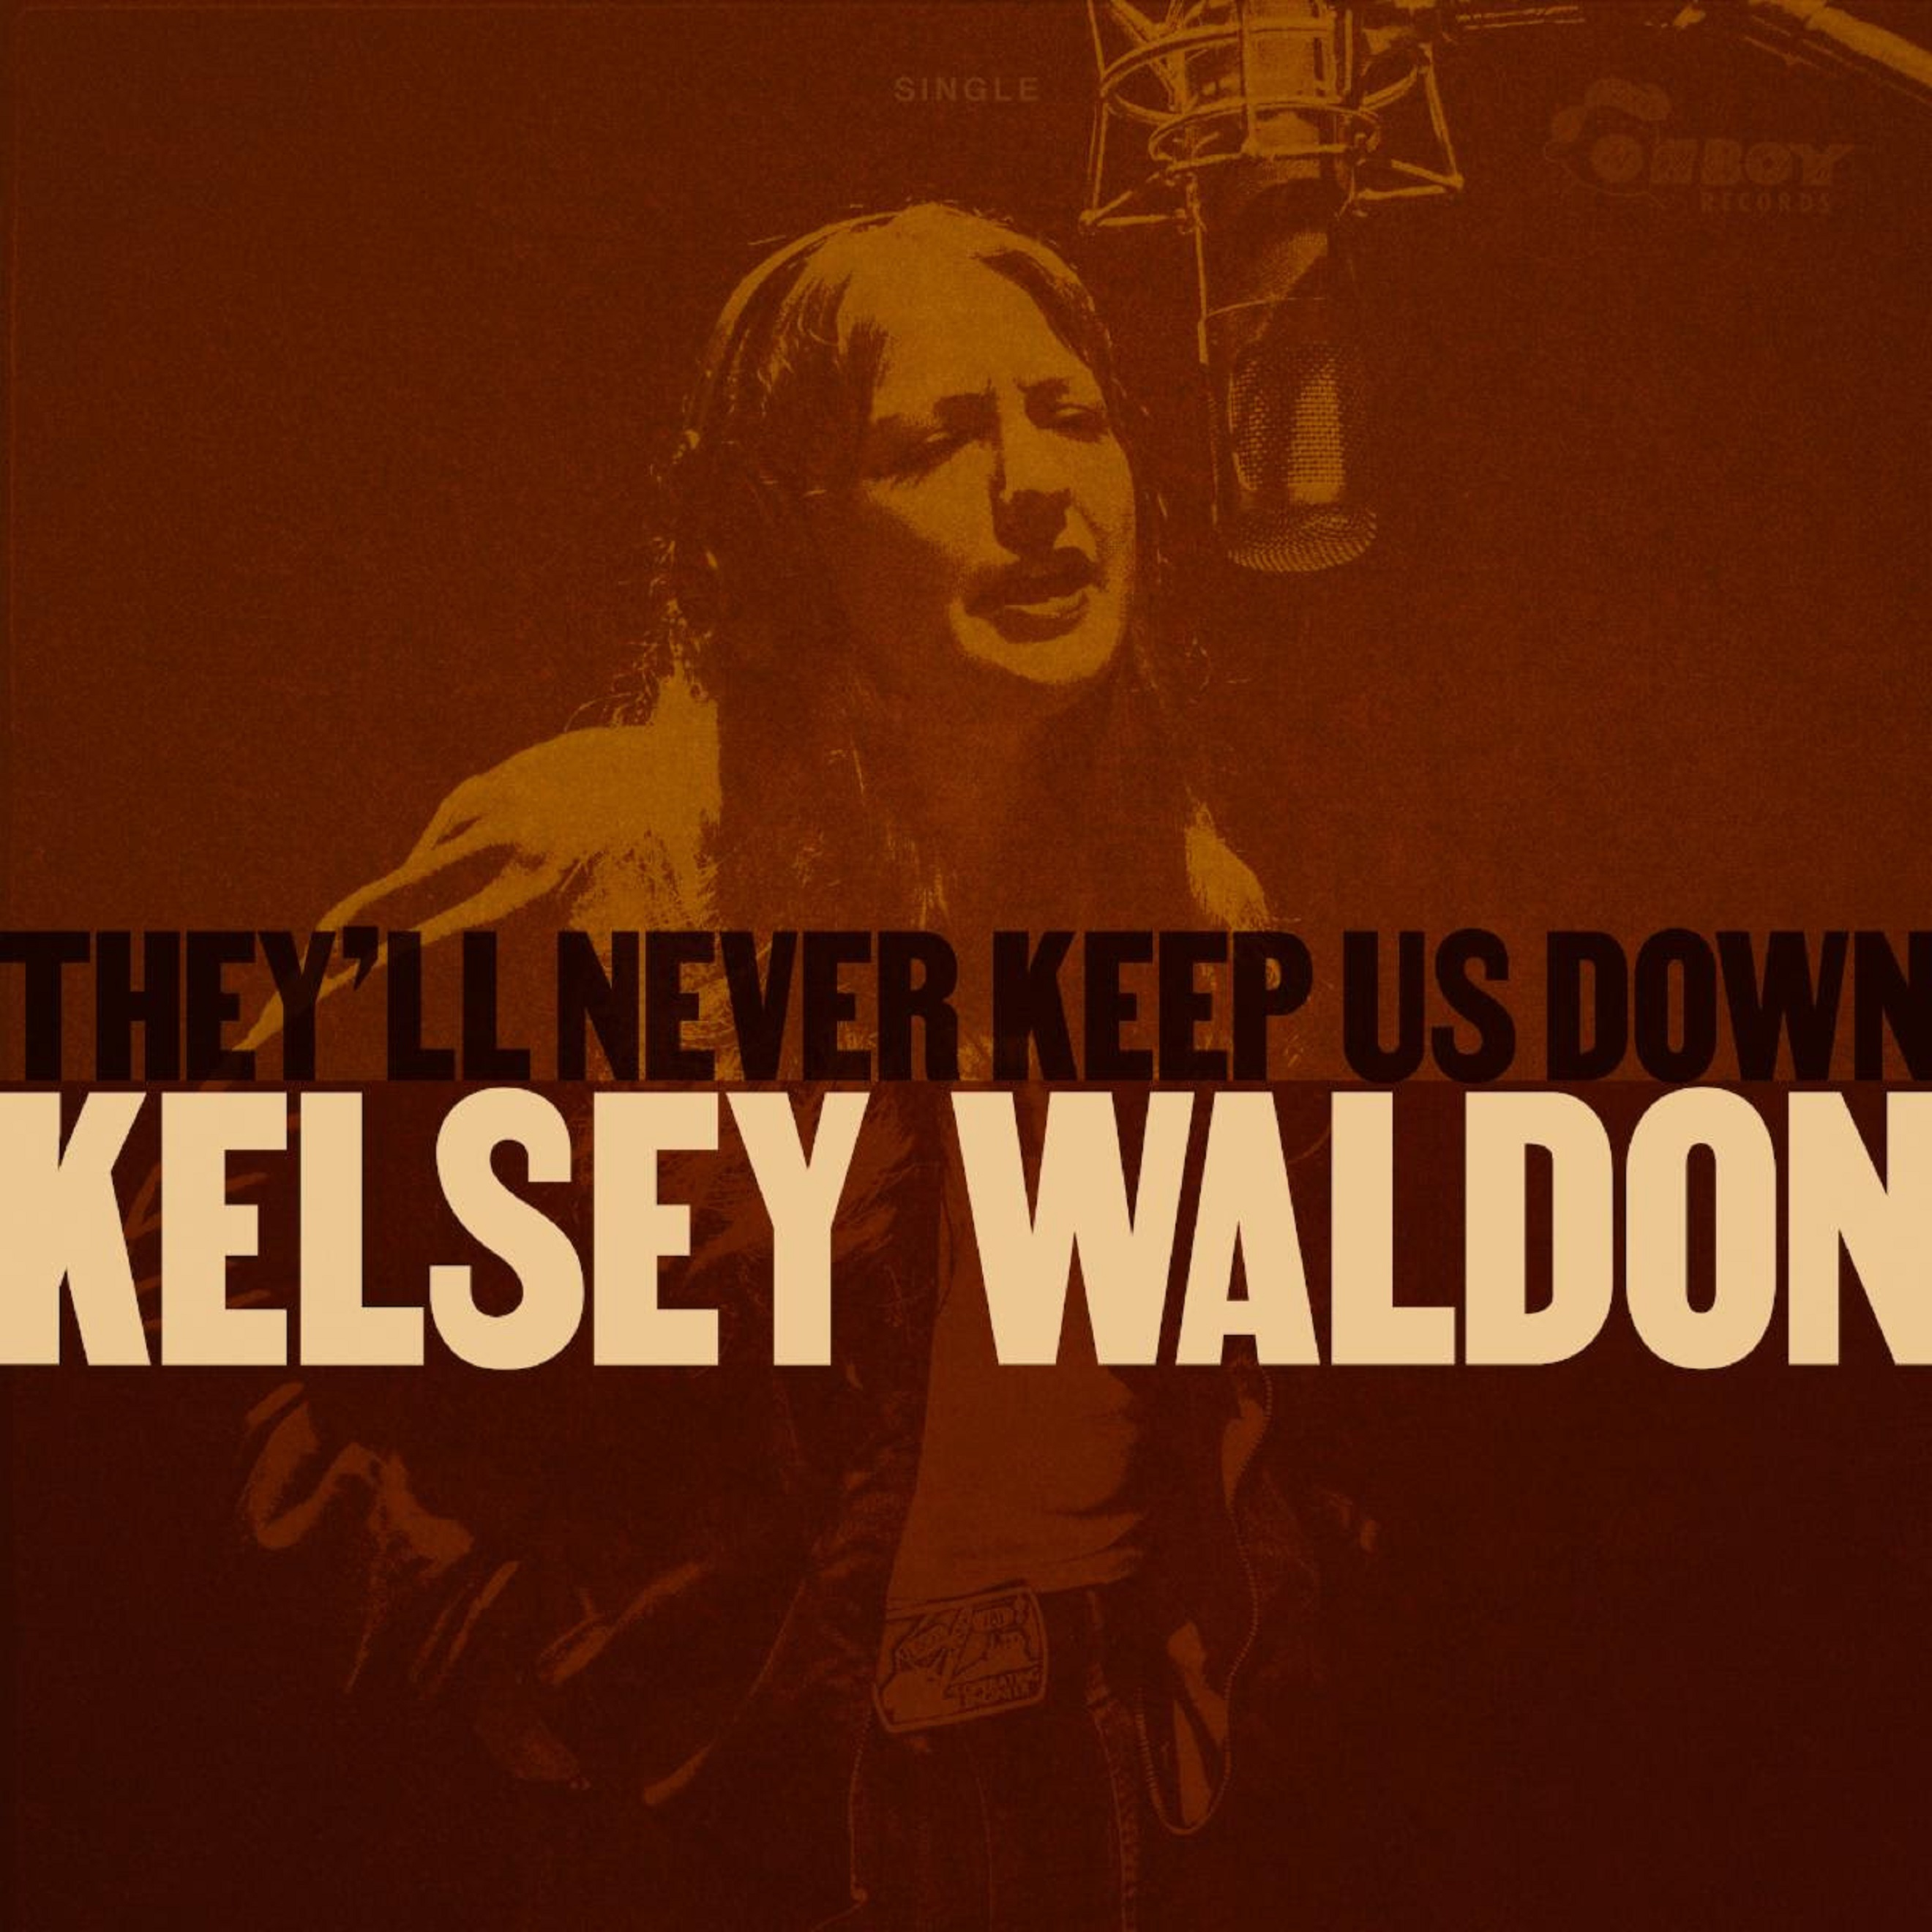 Kelsey Waldon Stands Up For What She Believes In On New EP